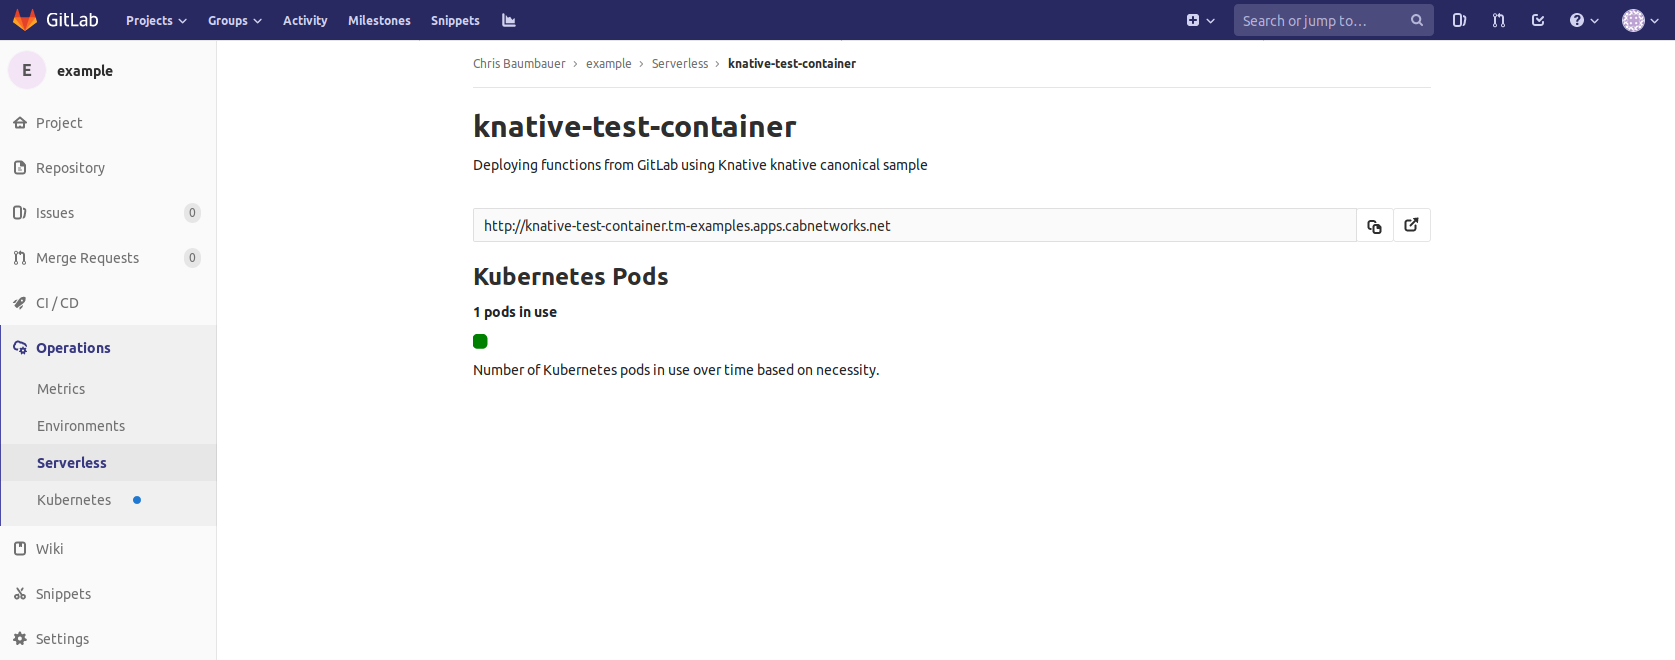 doc/user/project/clusters/serverless/img/serverless-details.png